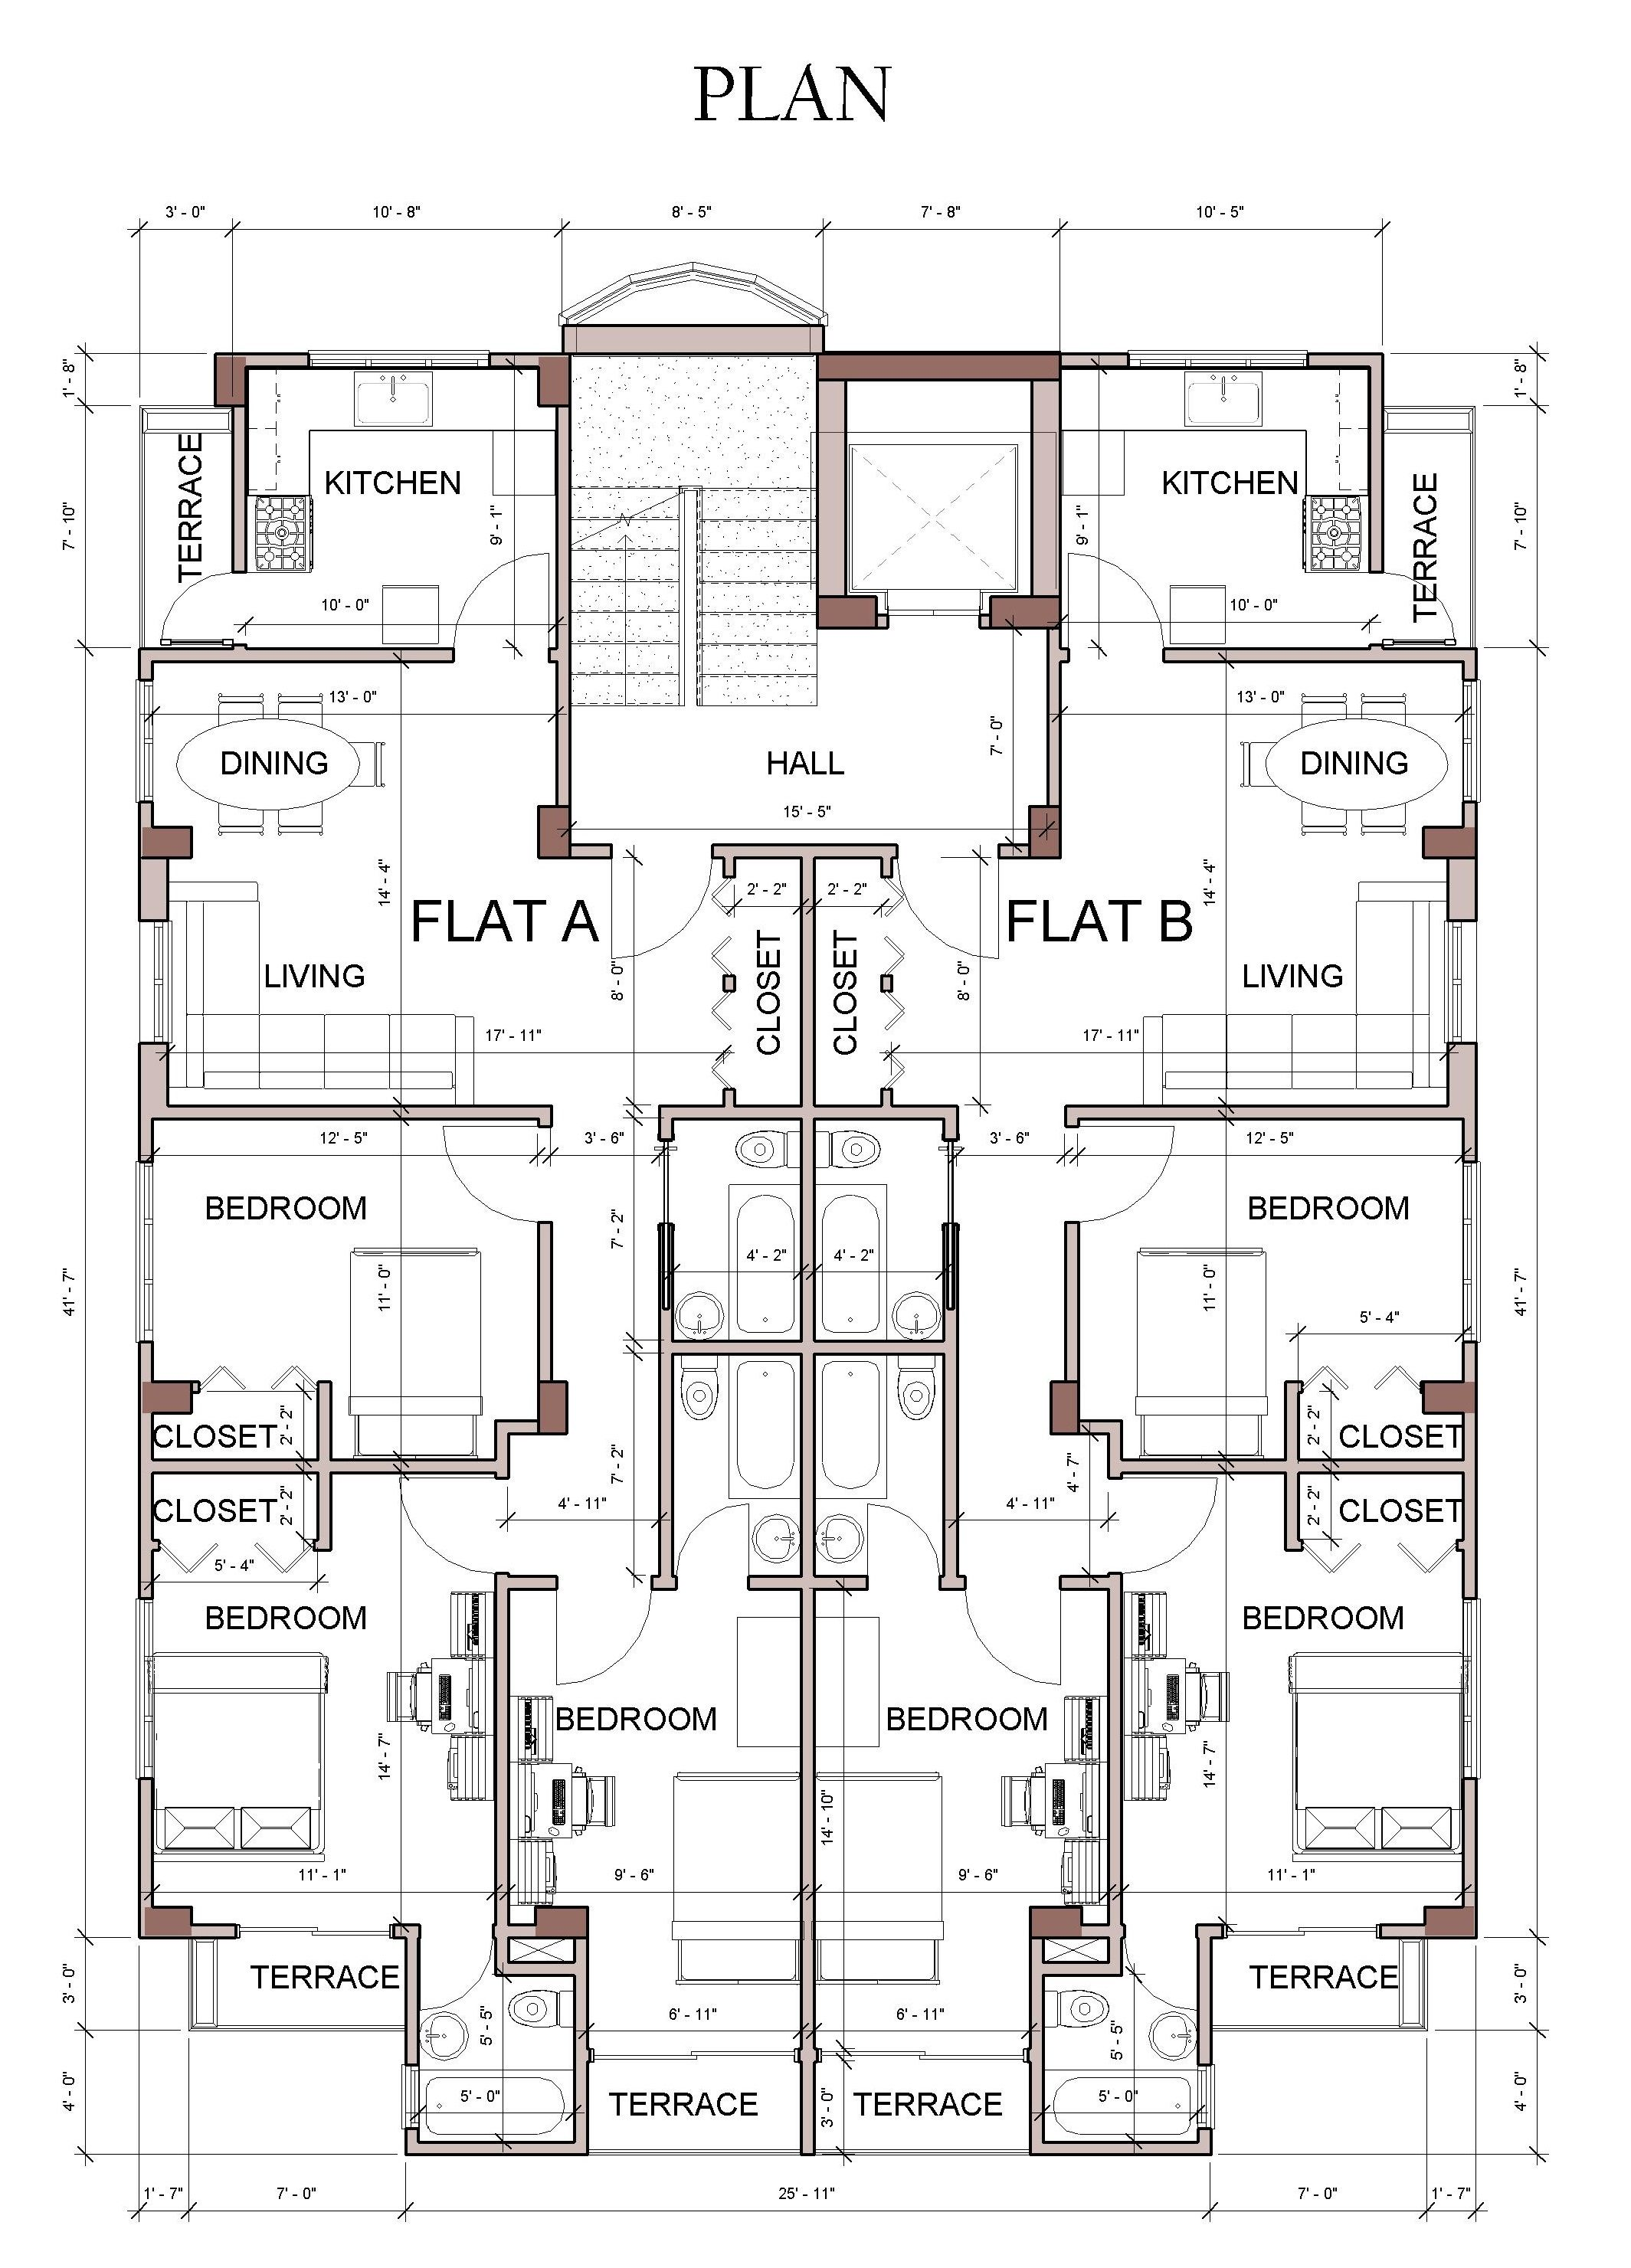 Typical Floor Plan Floor Plan Design Residential Architecture Plan Hotel Floor Plan